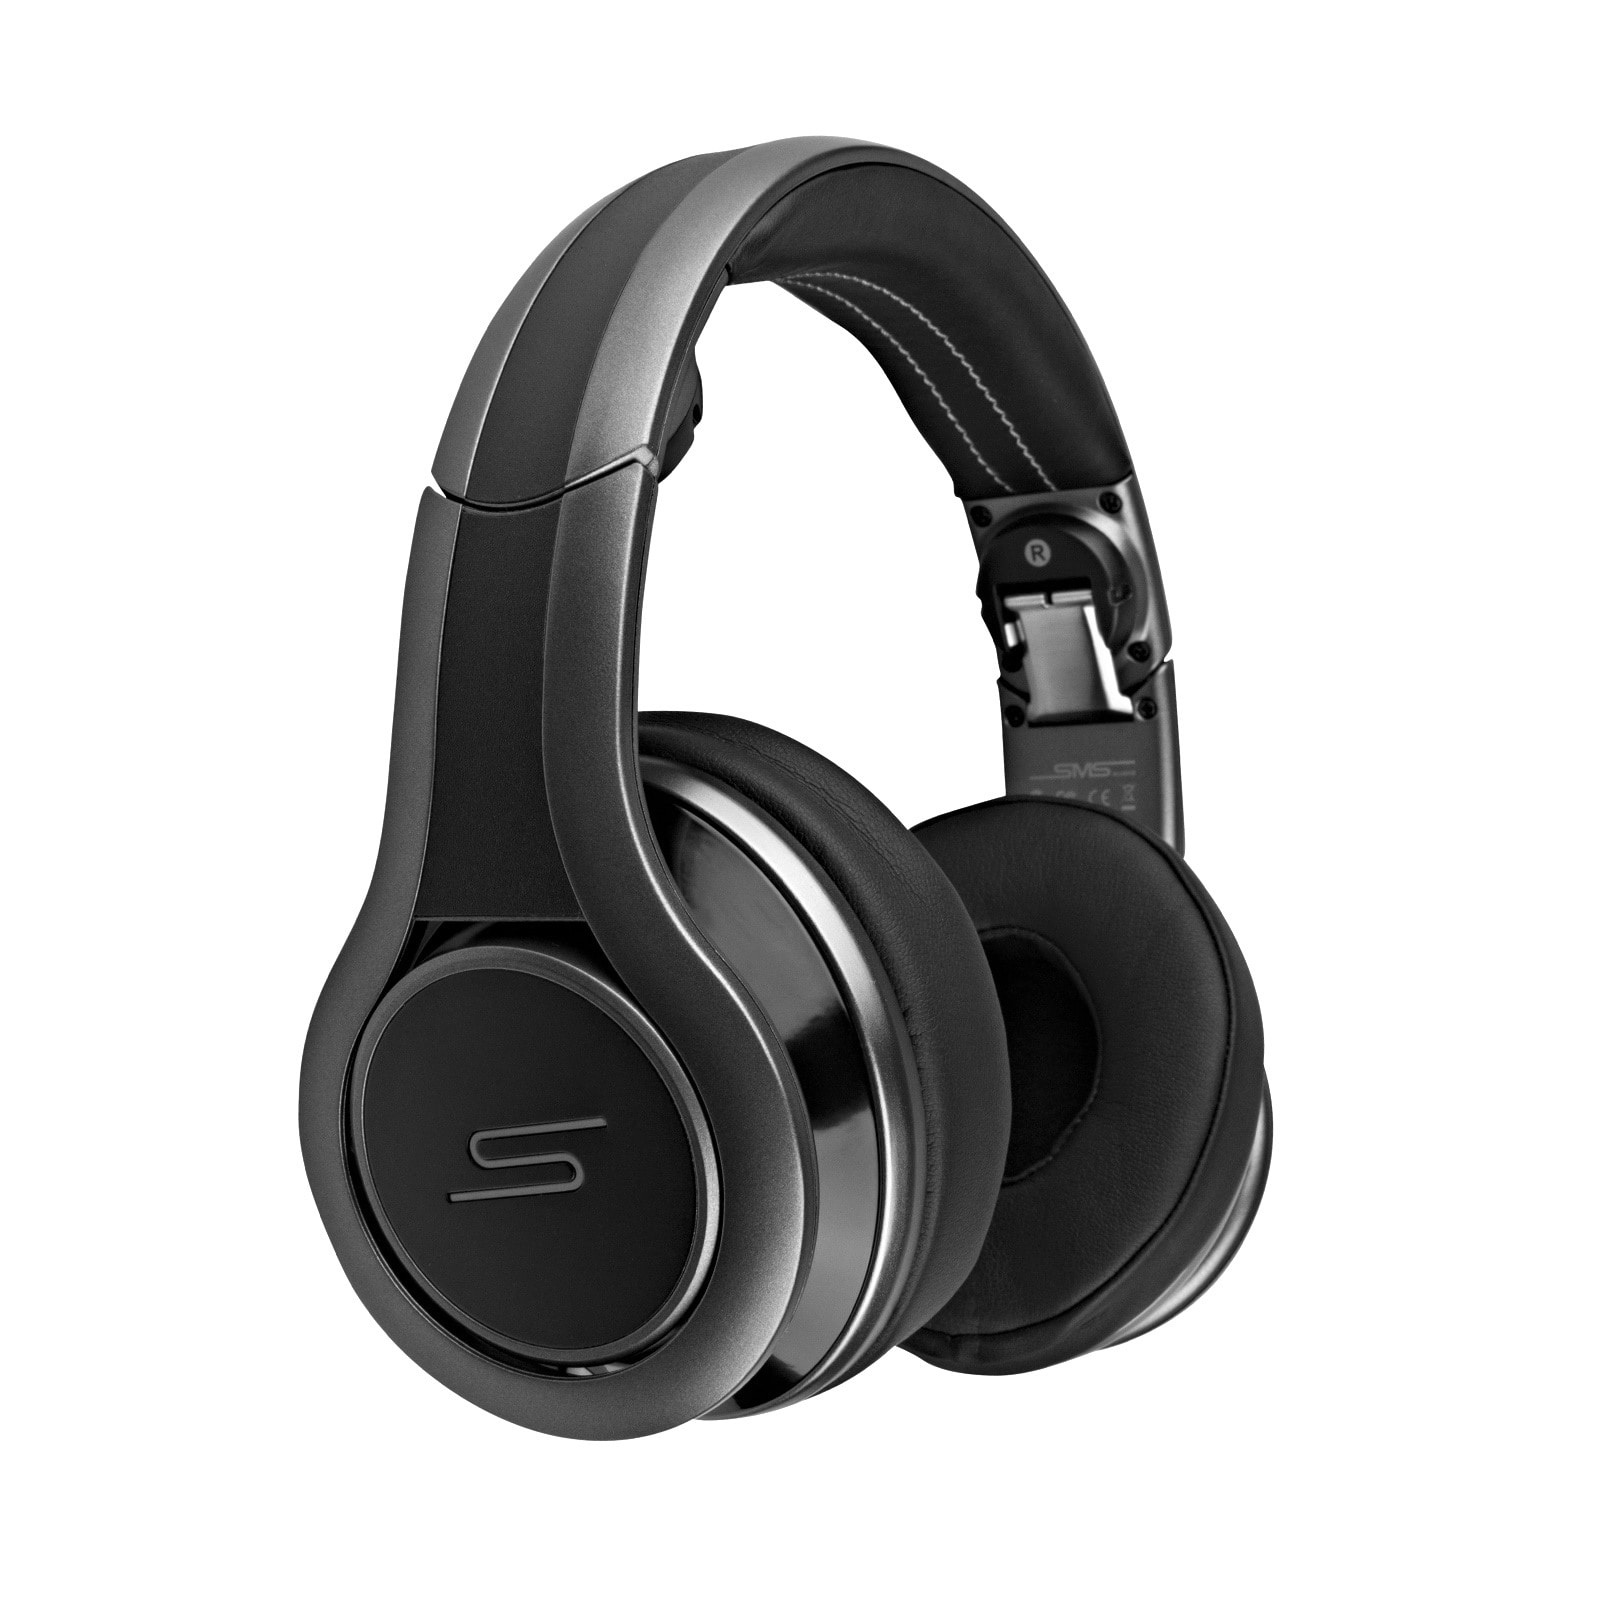 SMS Audio STREET Pro Performance Over-Ear DJ Headphones with In-Line Button Mic. $35 + Free Shipping (eBay Daily Deal)